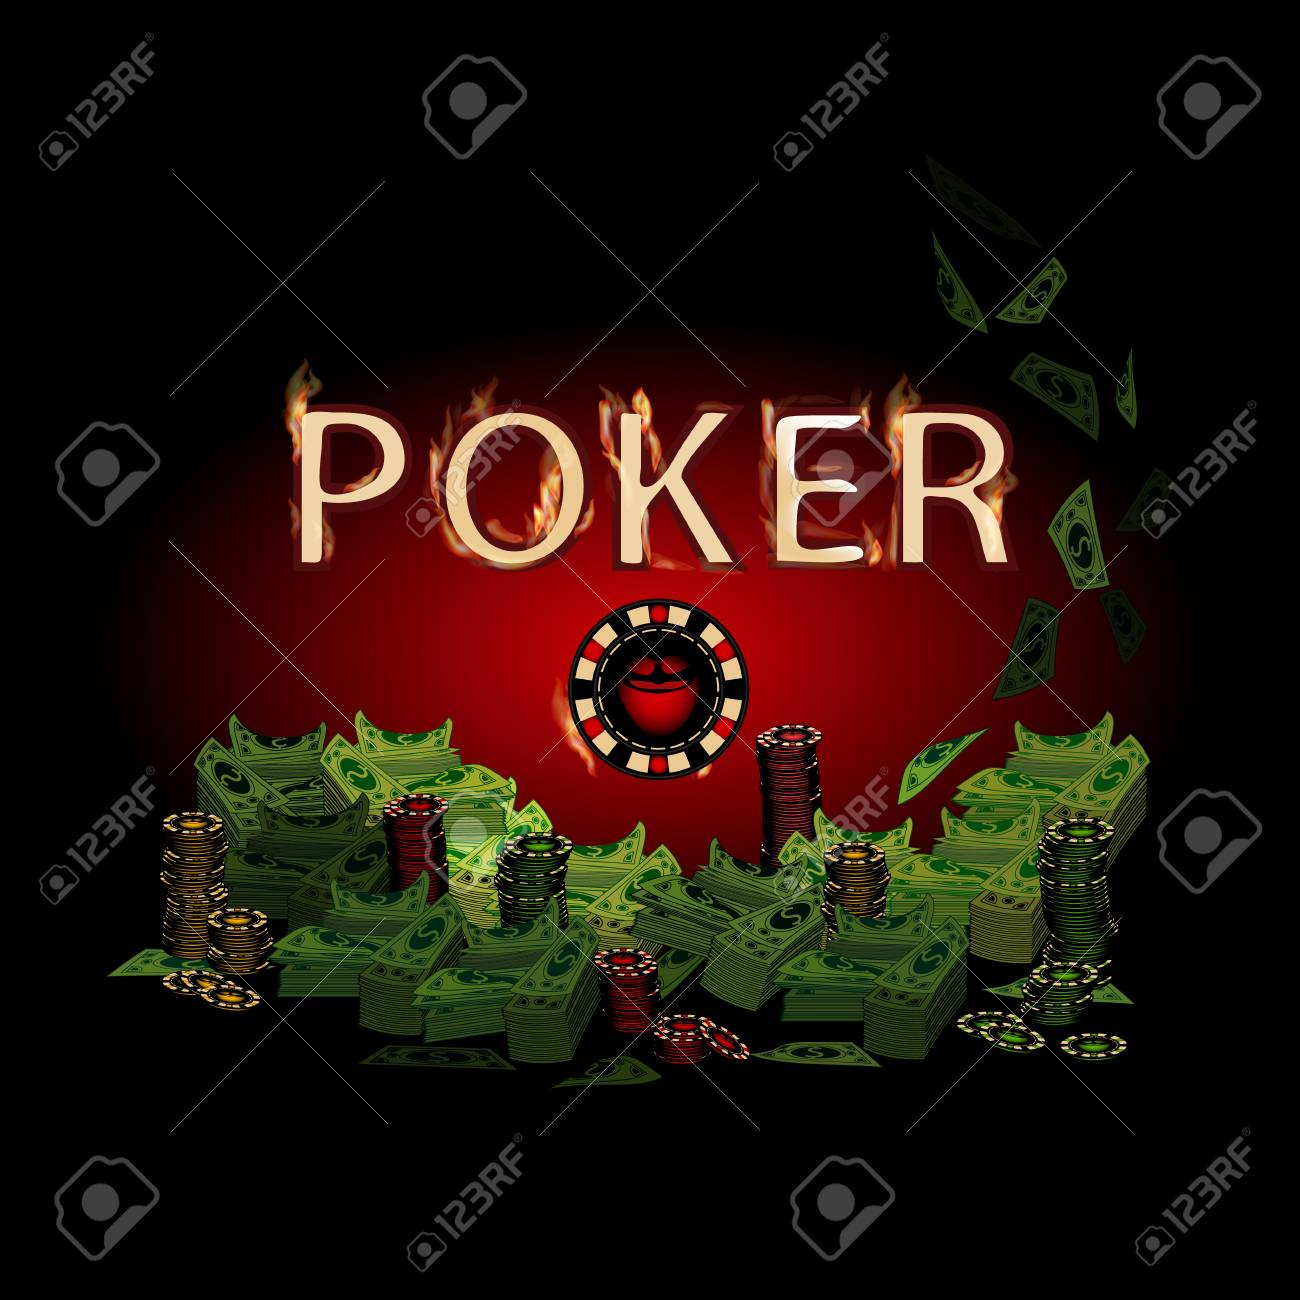 Poker legend fire  Money on a dark background  Simple fashion